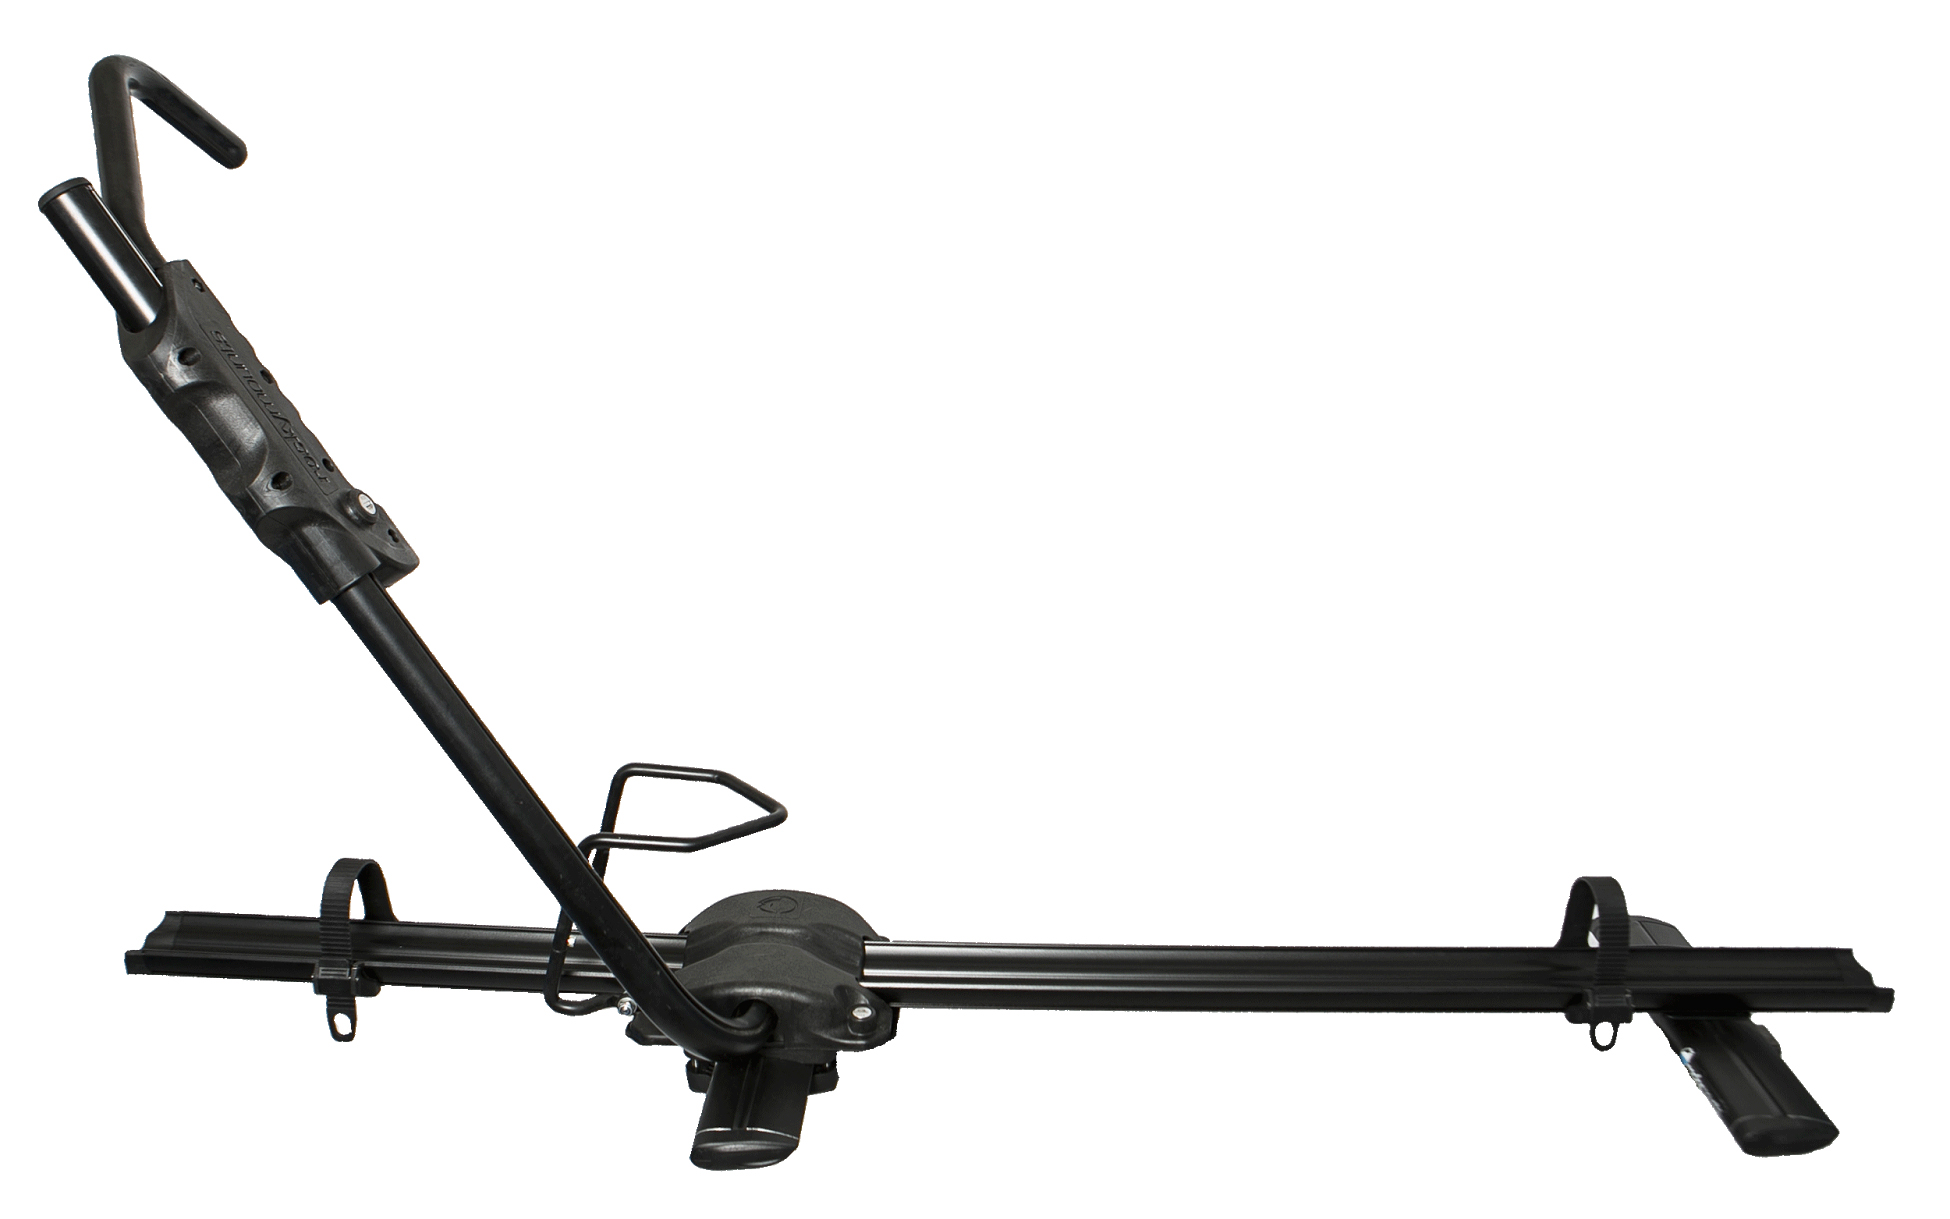 dp amazon deluxe hitch allen sports for ca bicycle with car rack mount inch automotive receiver bike